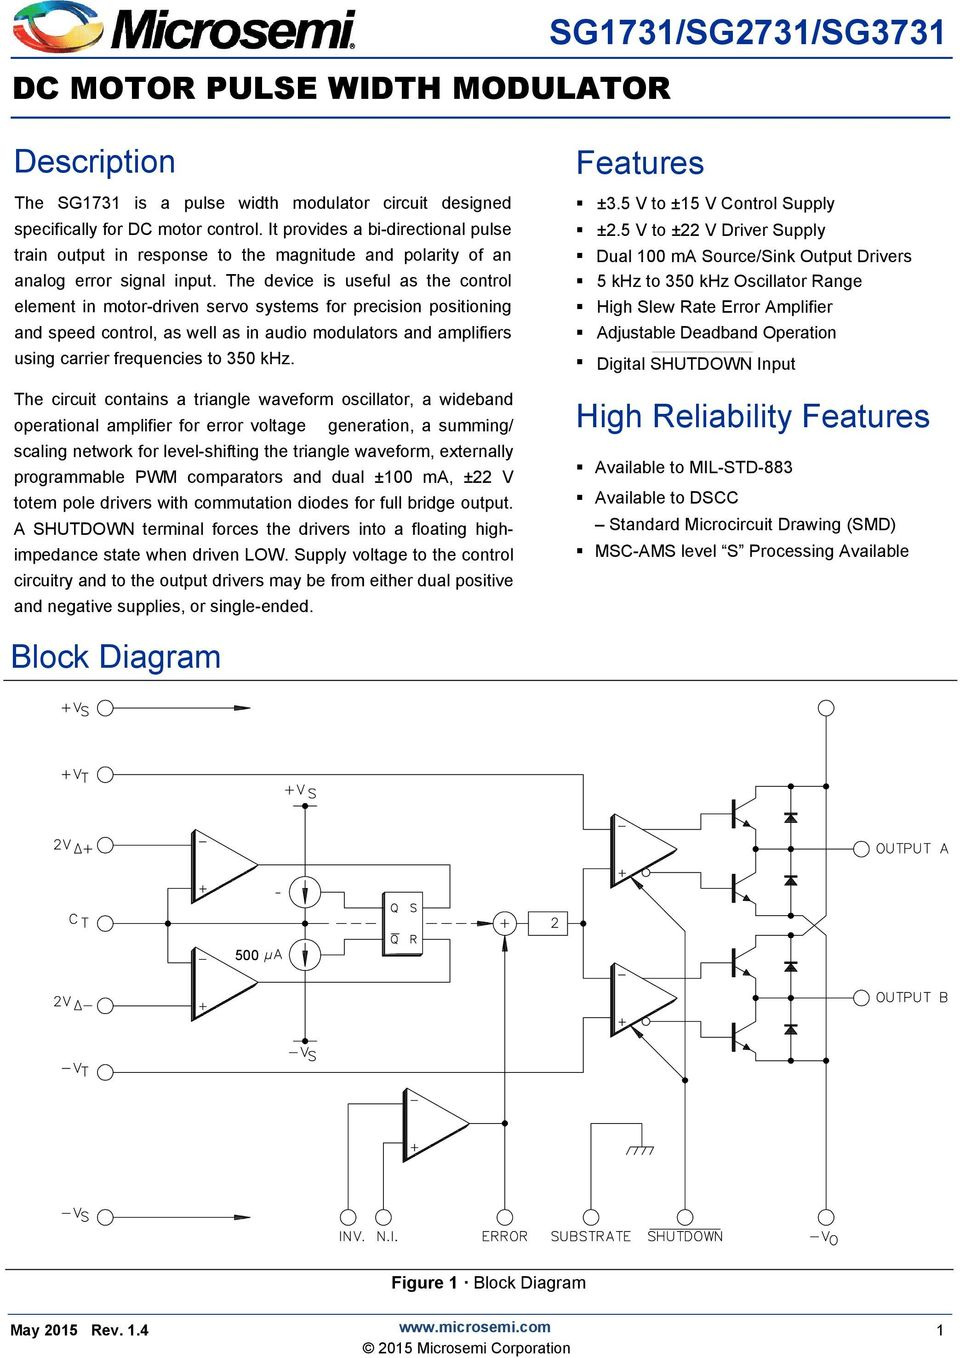 Sg1731 Sg2731 Sg3731 Description Features High Reliability 22w Amplifier For 12v Power Supply Systems The Device Is Useful As Control Element In Motor Driven Servo Precision